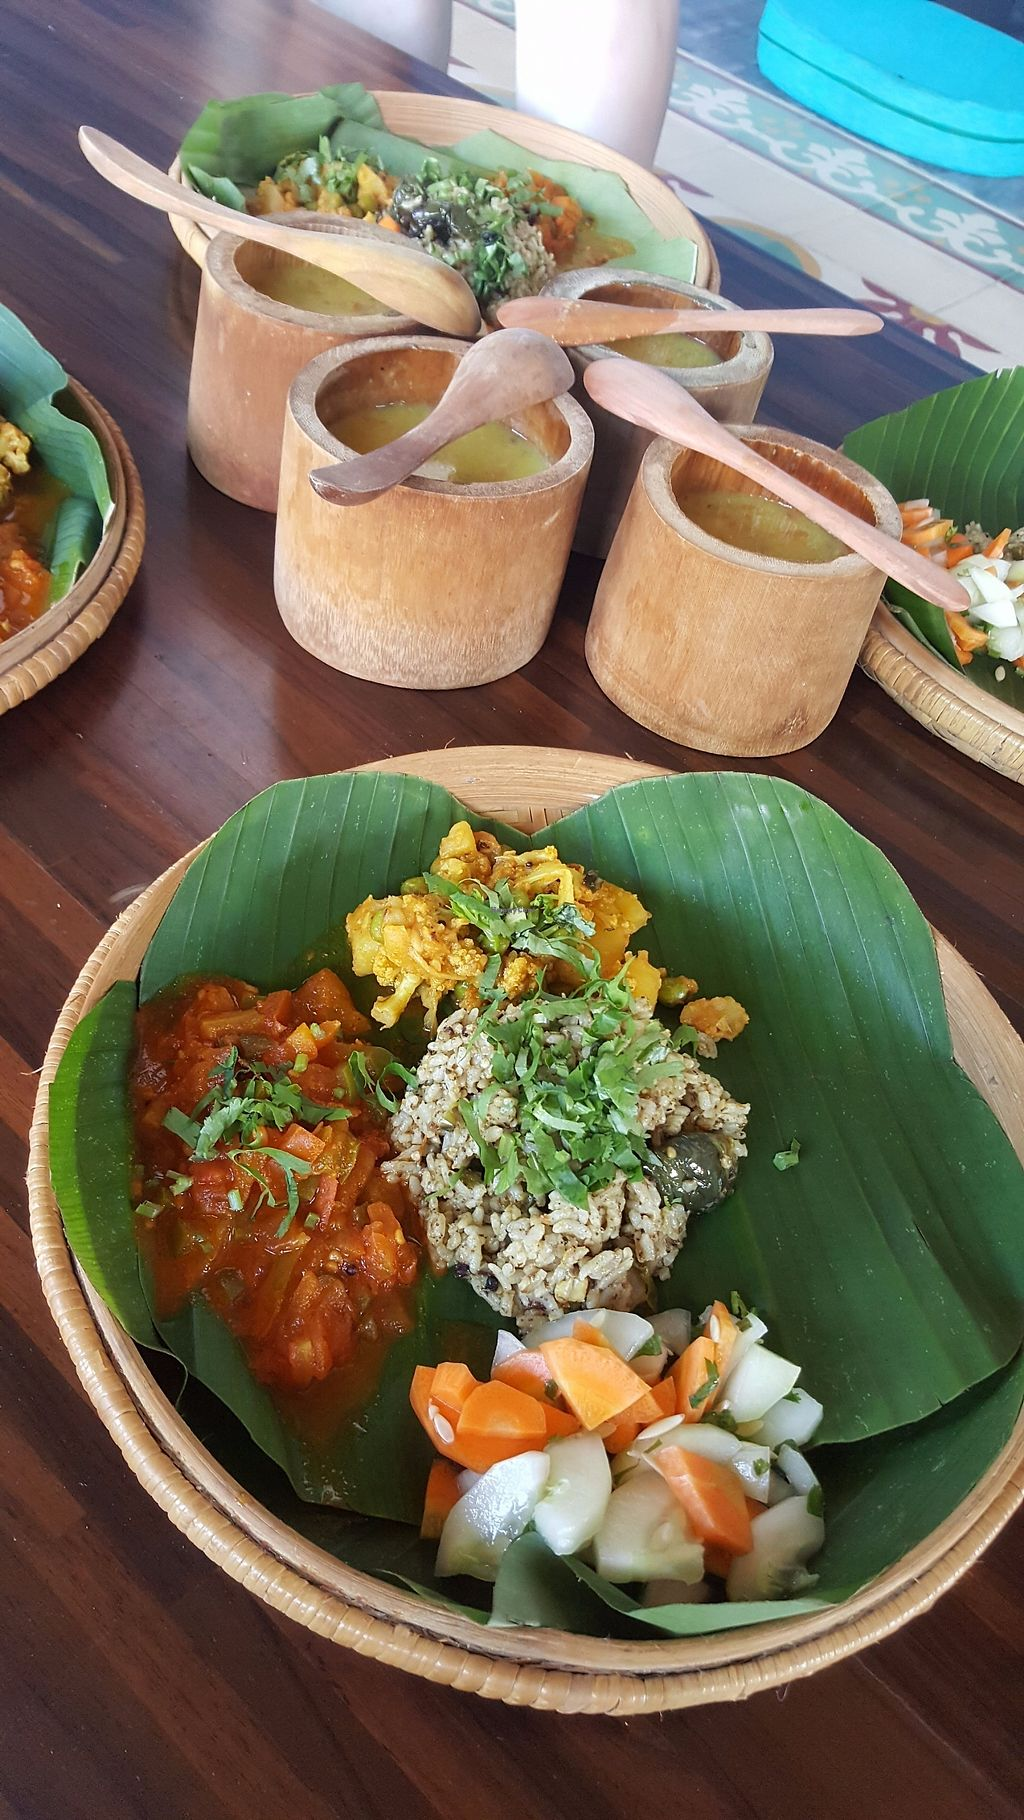 """Photo of Vedic Kitchen   by <a href=""""/members/profile/Elicesantoso"""">Elicesantoso</a> <br/>Thali with organic brown rice served with salad, sides ,dal <br/> June 30, 2017  - <a href='/contact/abuse/image/95029/274985'>Report</a>"""